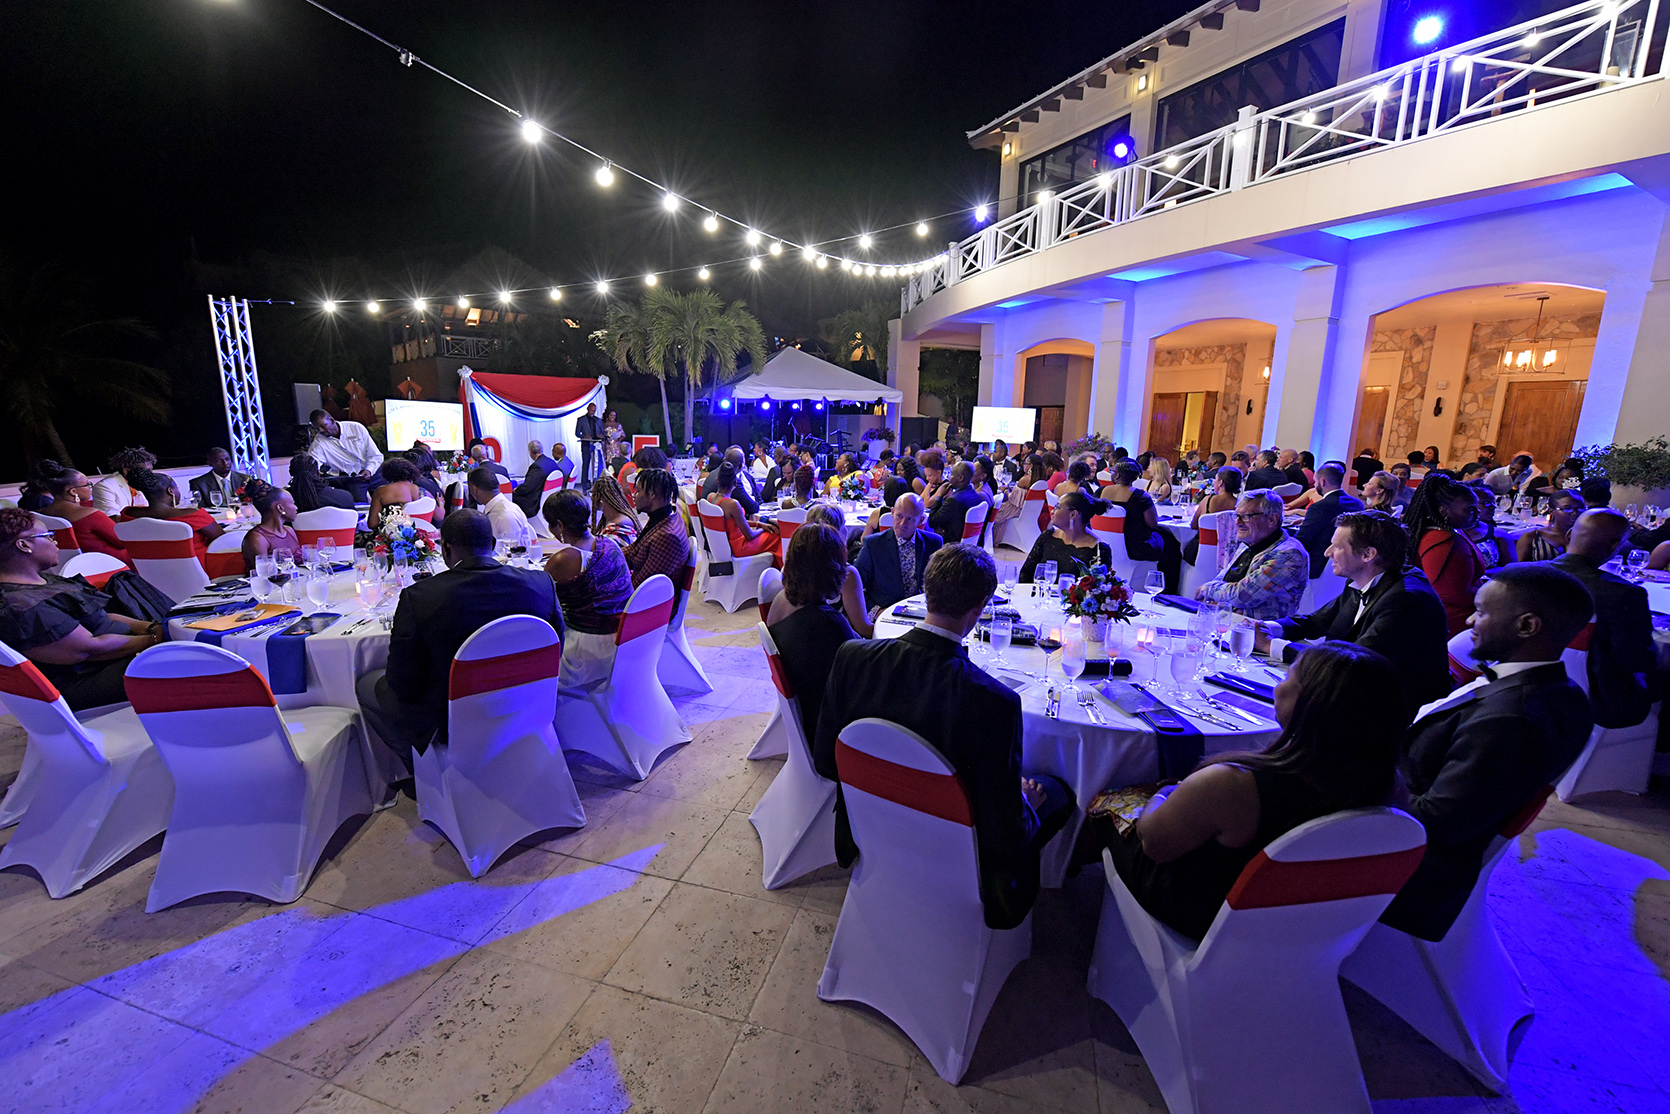 Gala Awards Dinner Celebrates Financial Services Industry